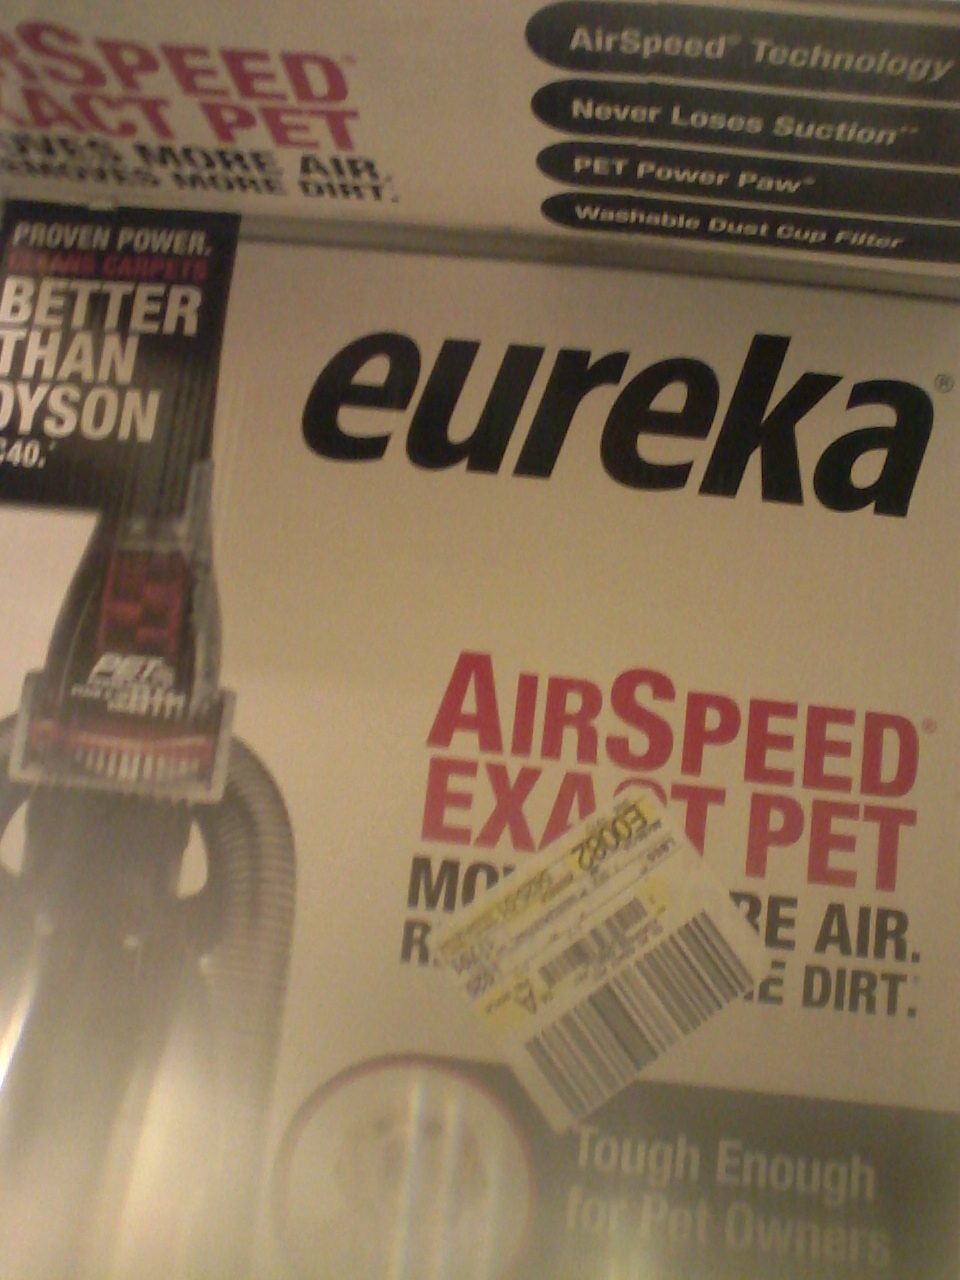 top 39 complaints and reviews about eureka appliances purchased vacuum cleaner in motor burned out in took in for repairs under warranty almost 2 weeks after and not ready called eureka to